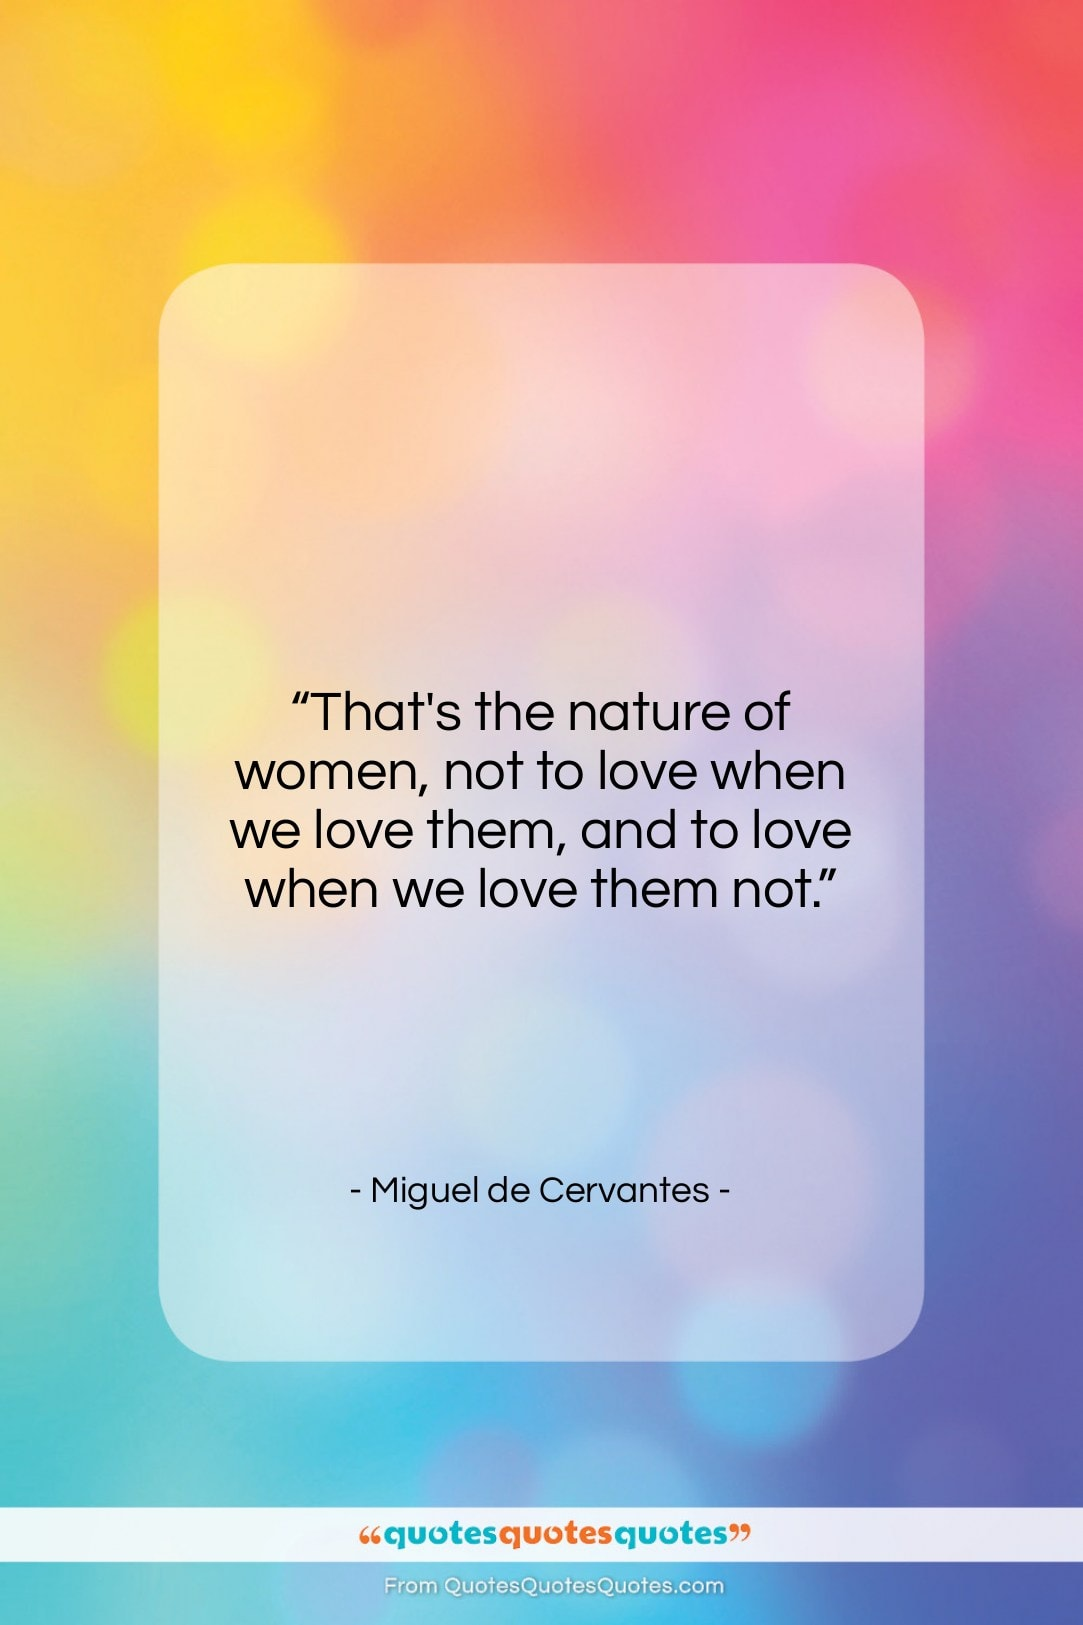 """Miguel de Cervantes quote: """"That's the nature of women, not to…""""- at QuotesQuotesQuotes.com"""